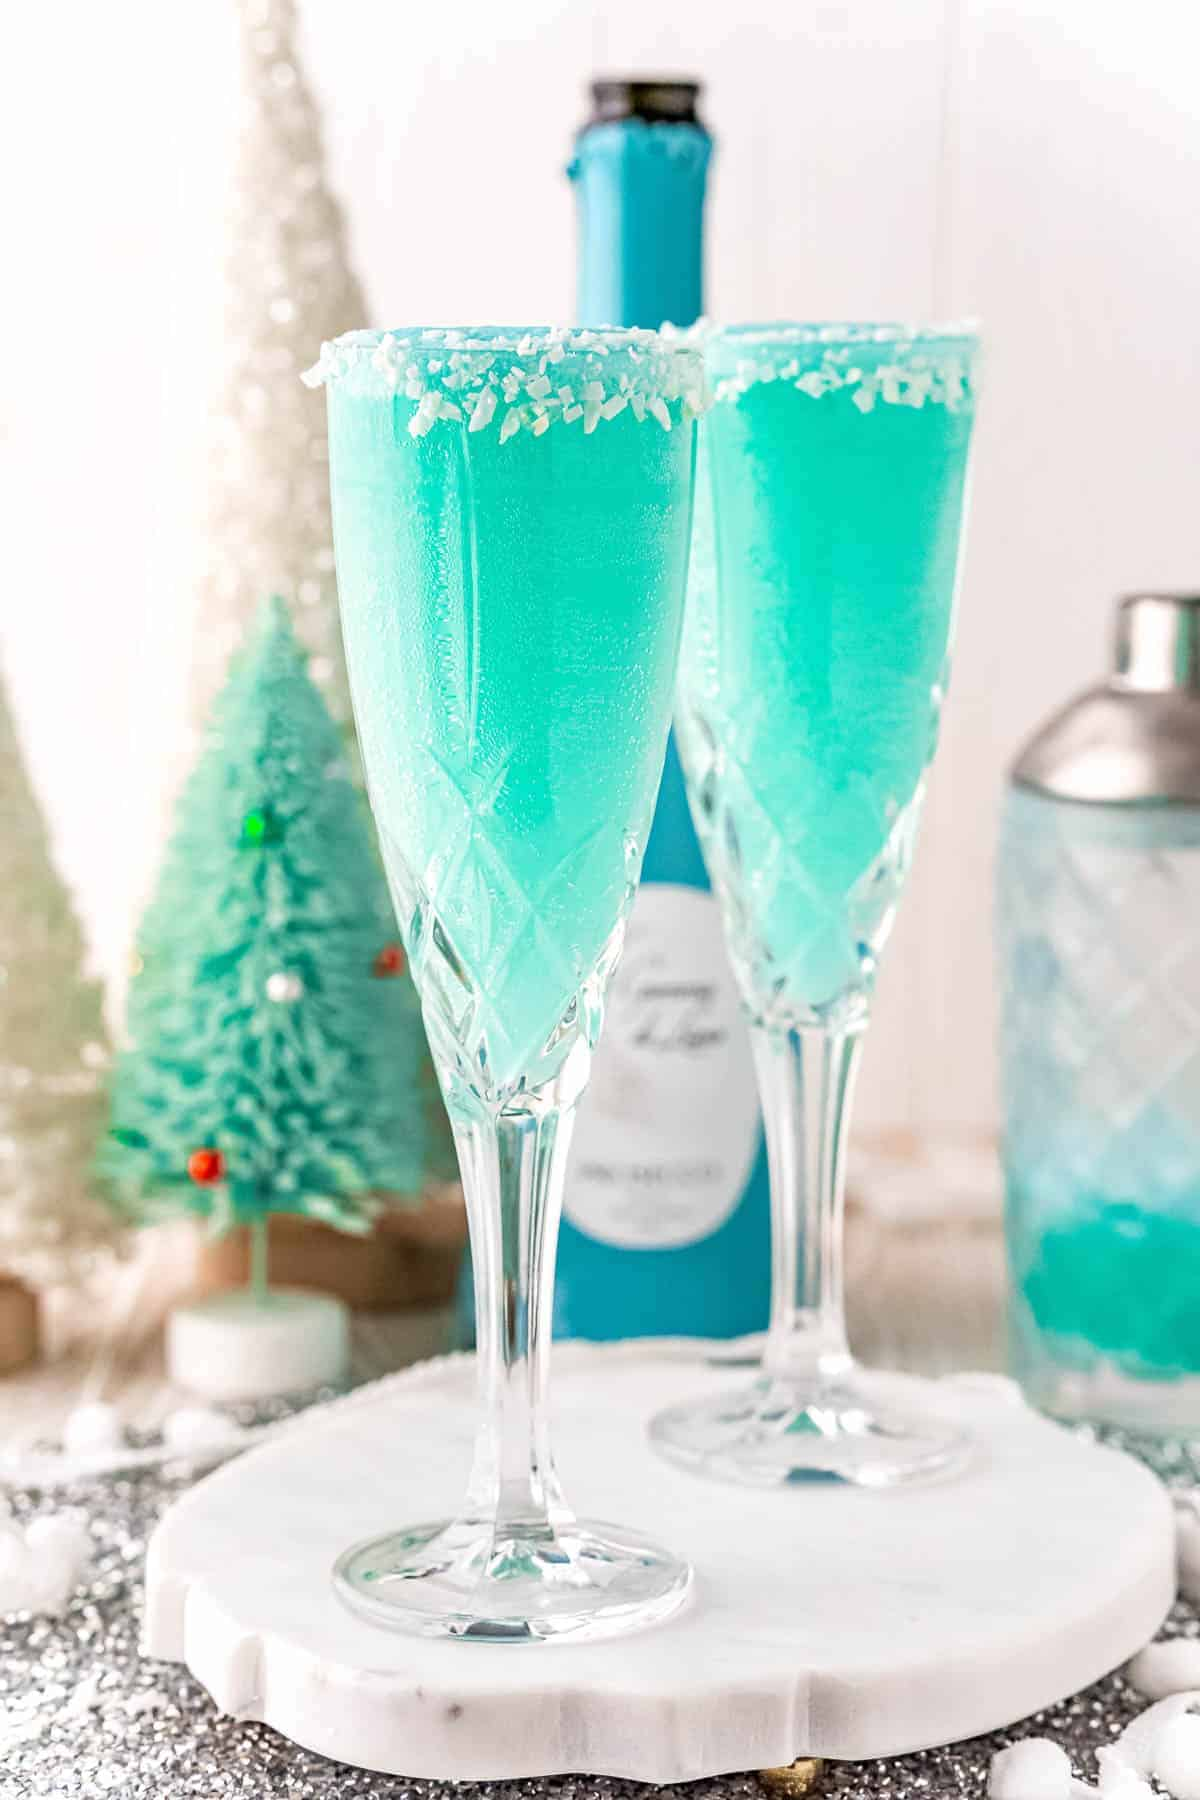 Festive bright blue drink in champagne flutes.